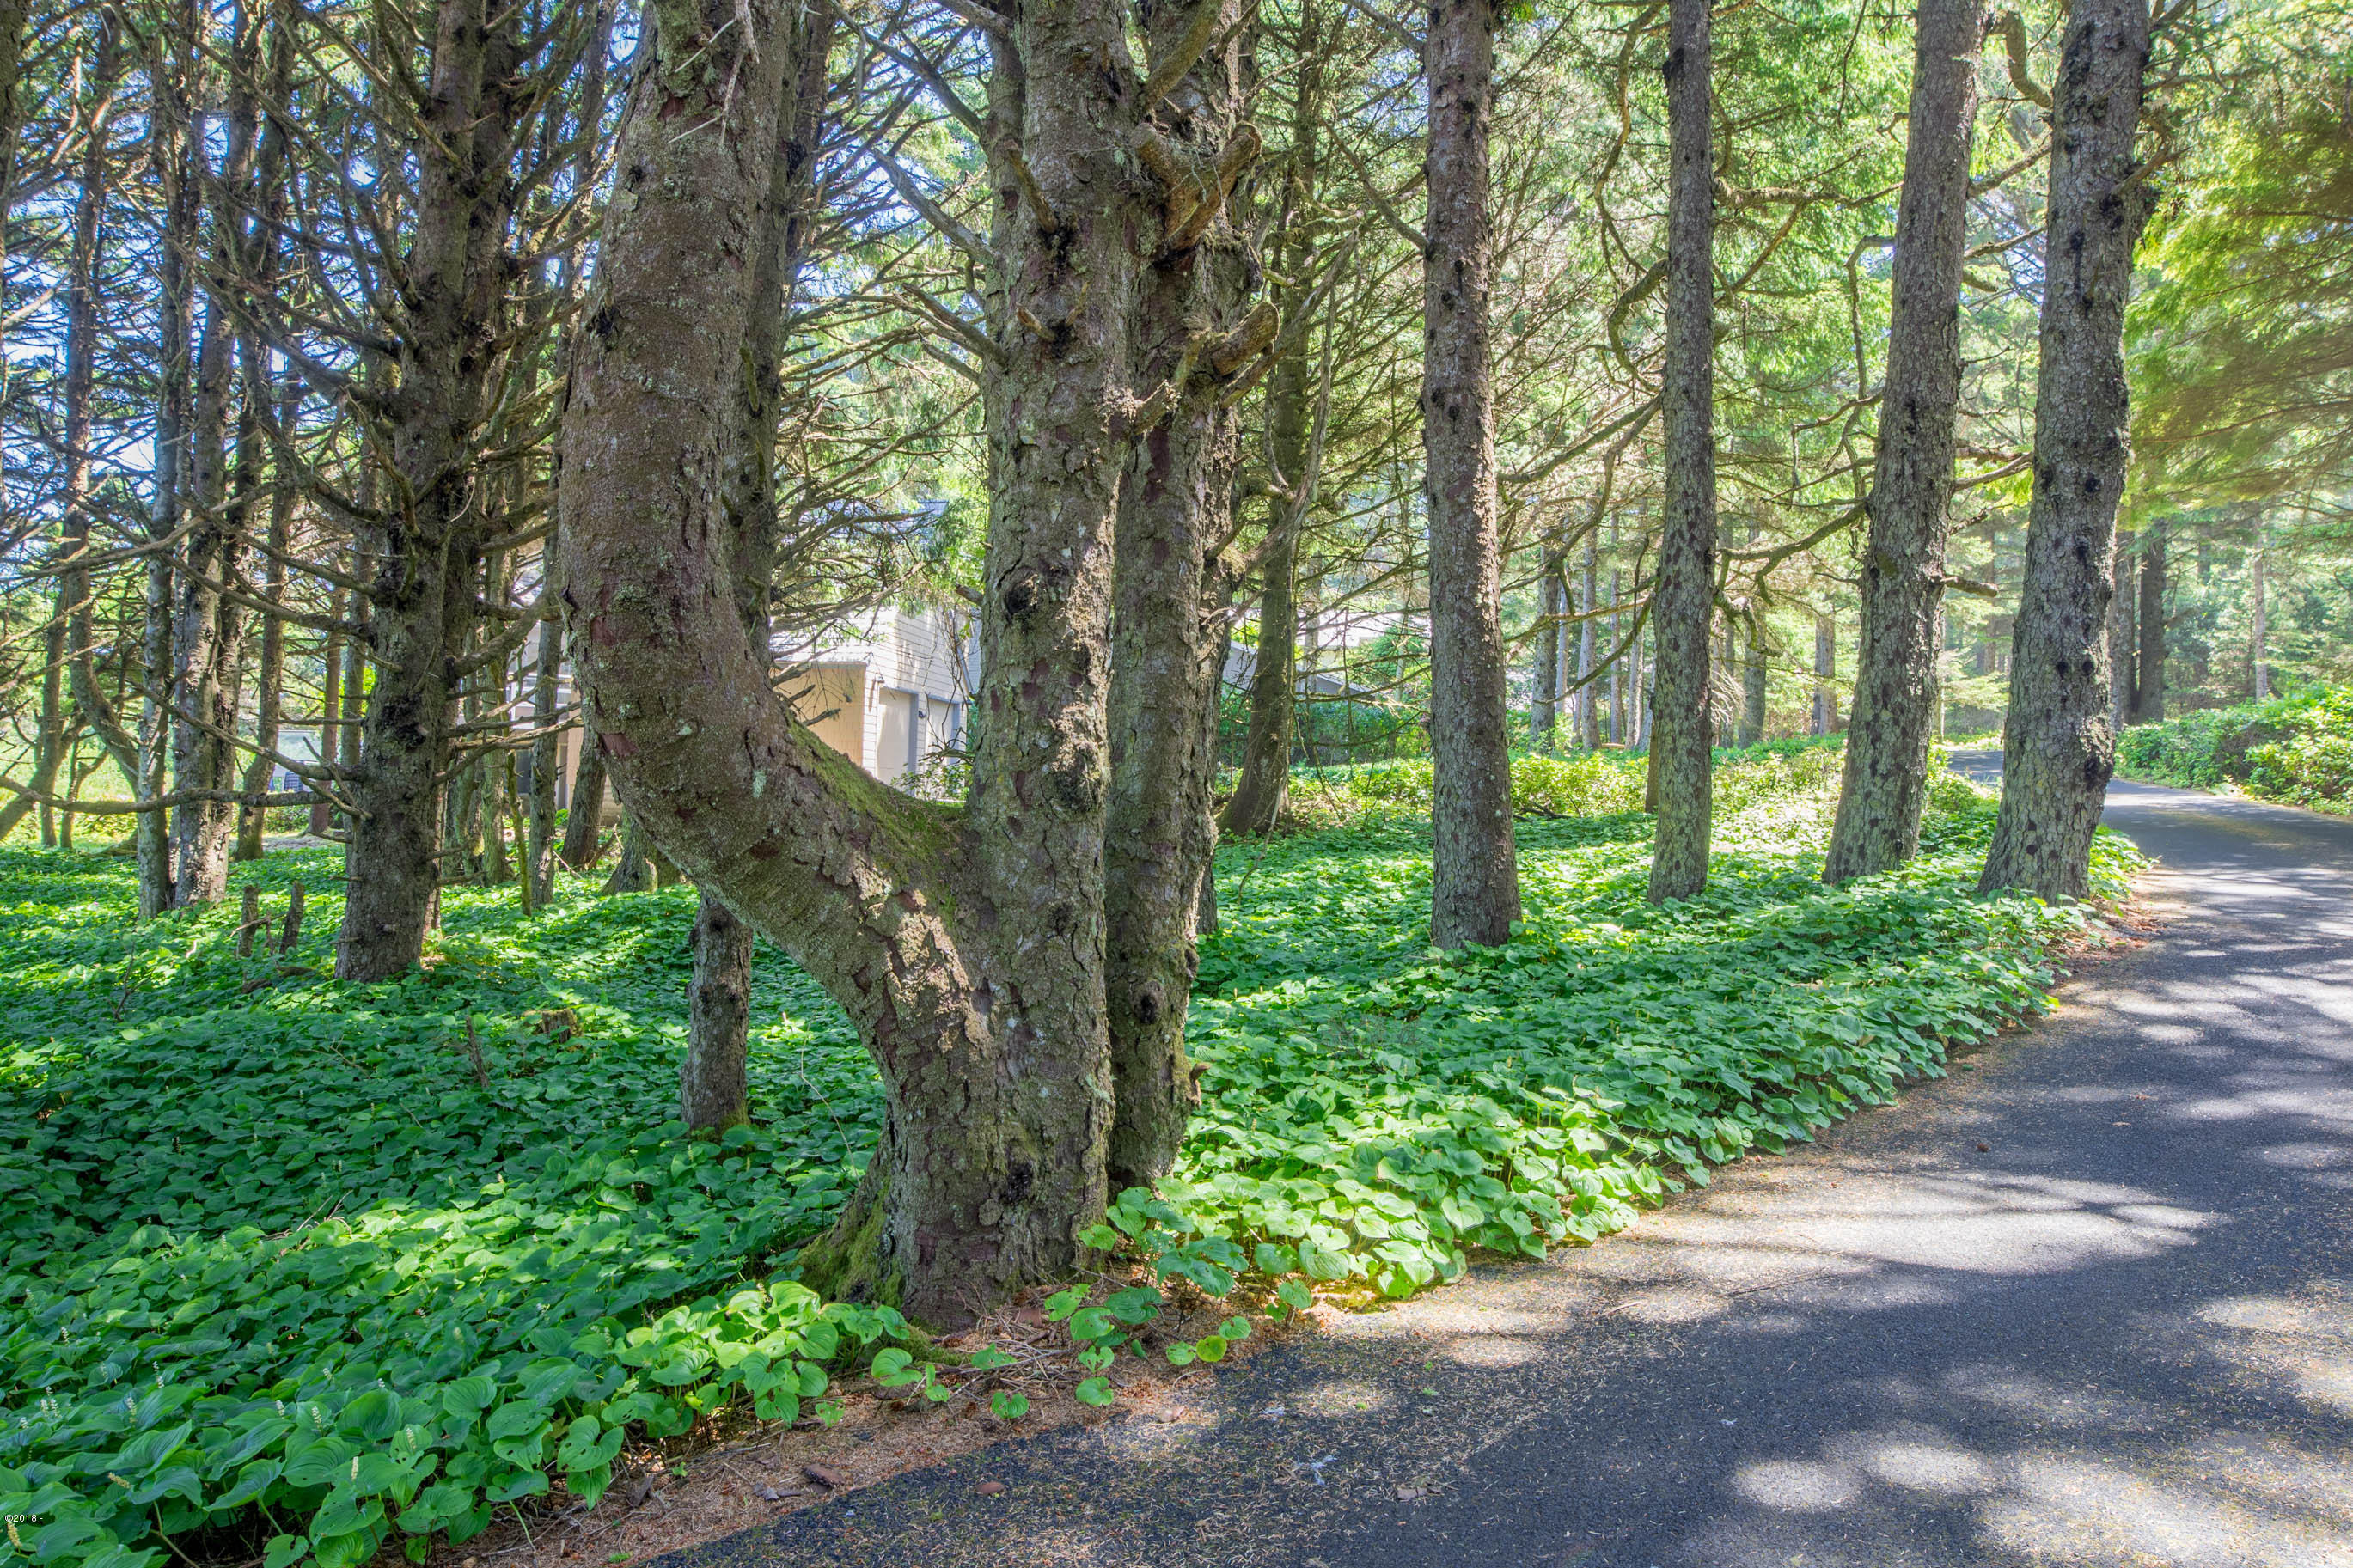 LOT 50 Cove Pt, Depoe Bay, OR 97341 - View from road